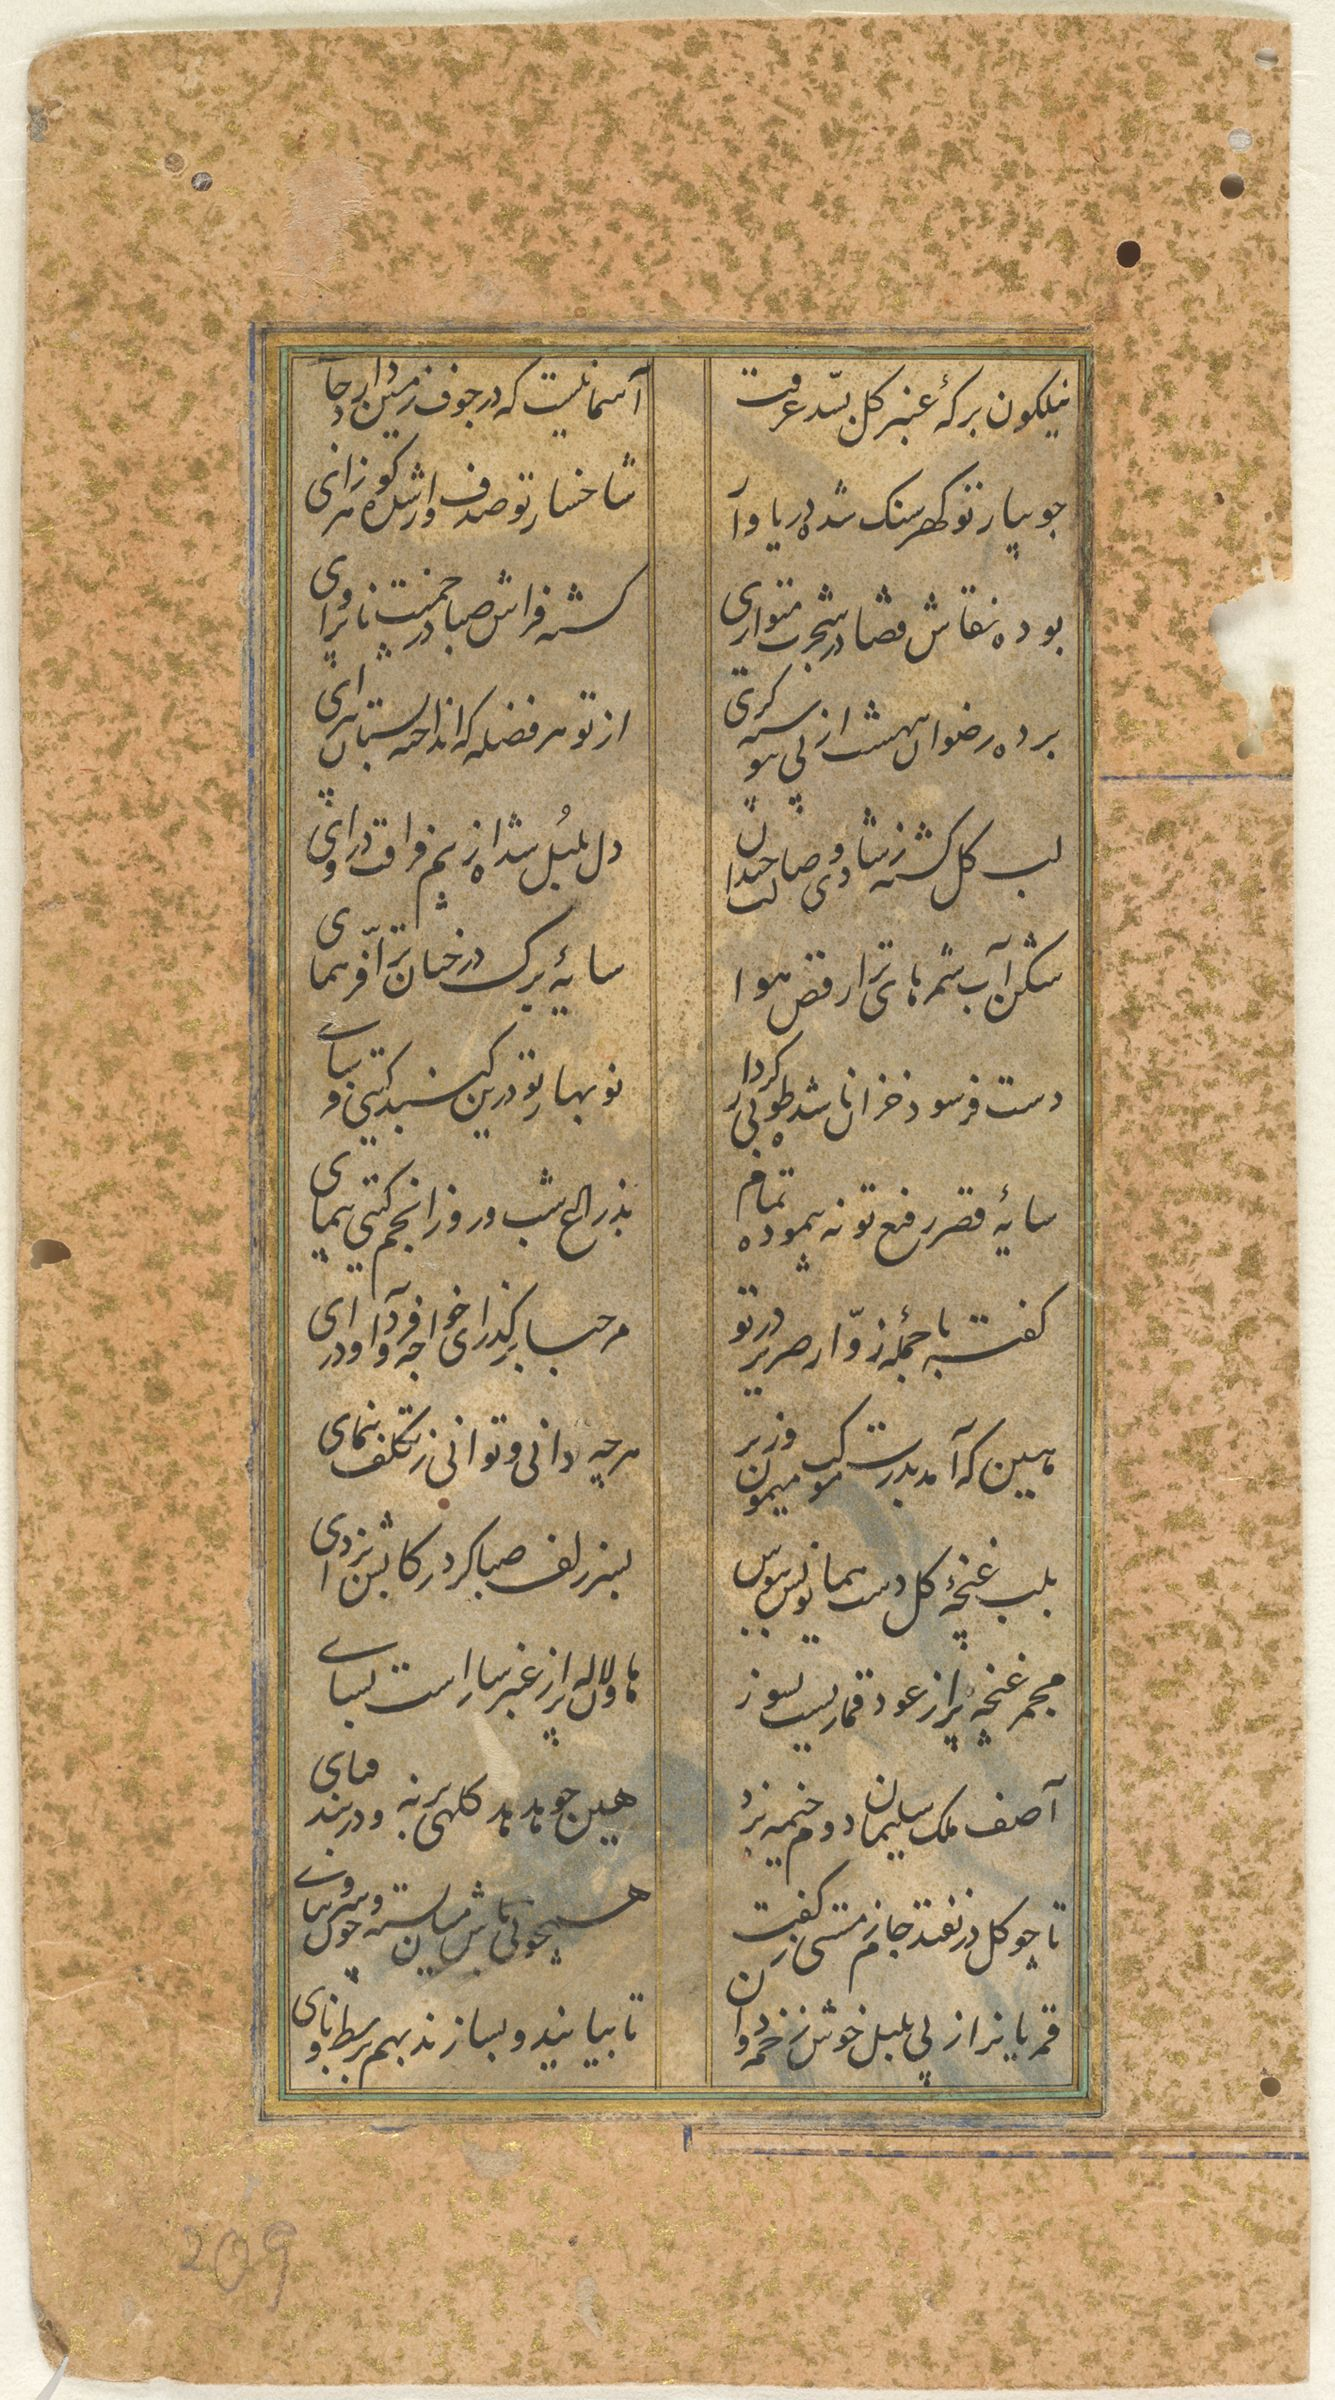 Folio 209 (Text, Recto And Verso), From A Manuscript Of The Divan (Collection Of Works) Of Anvari